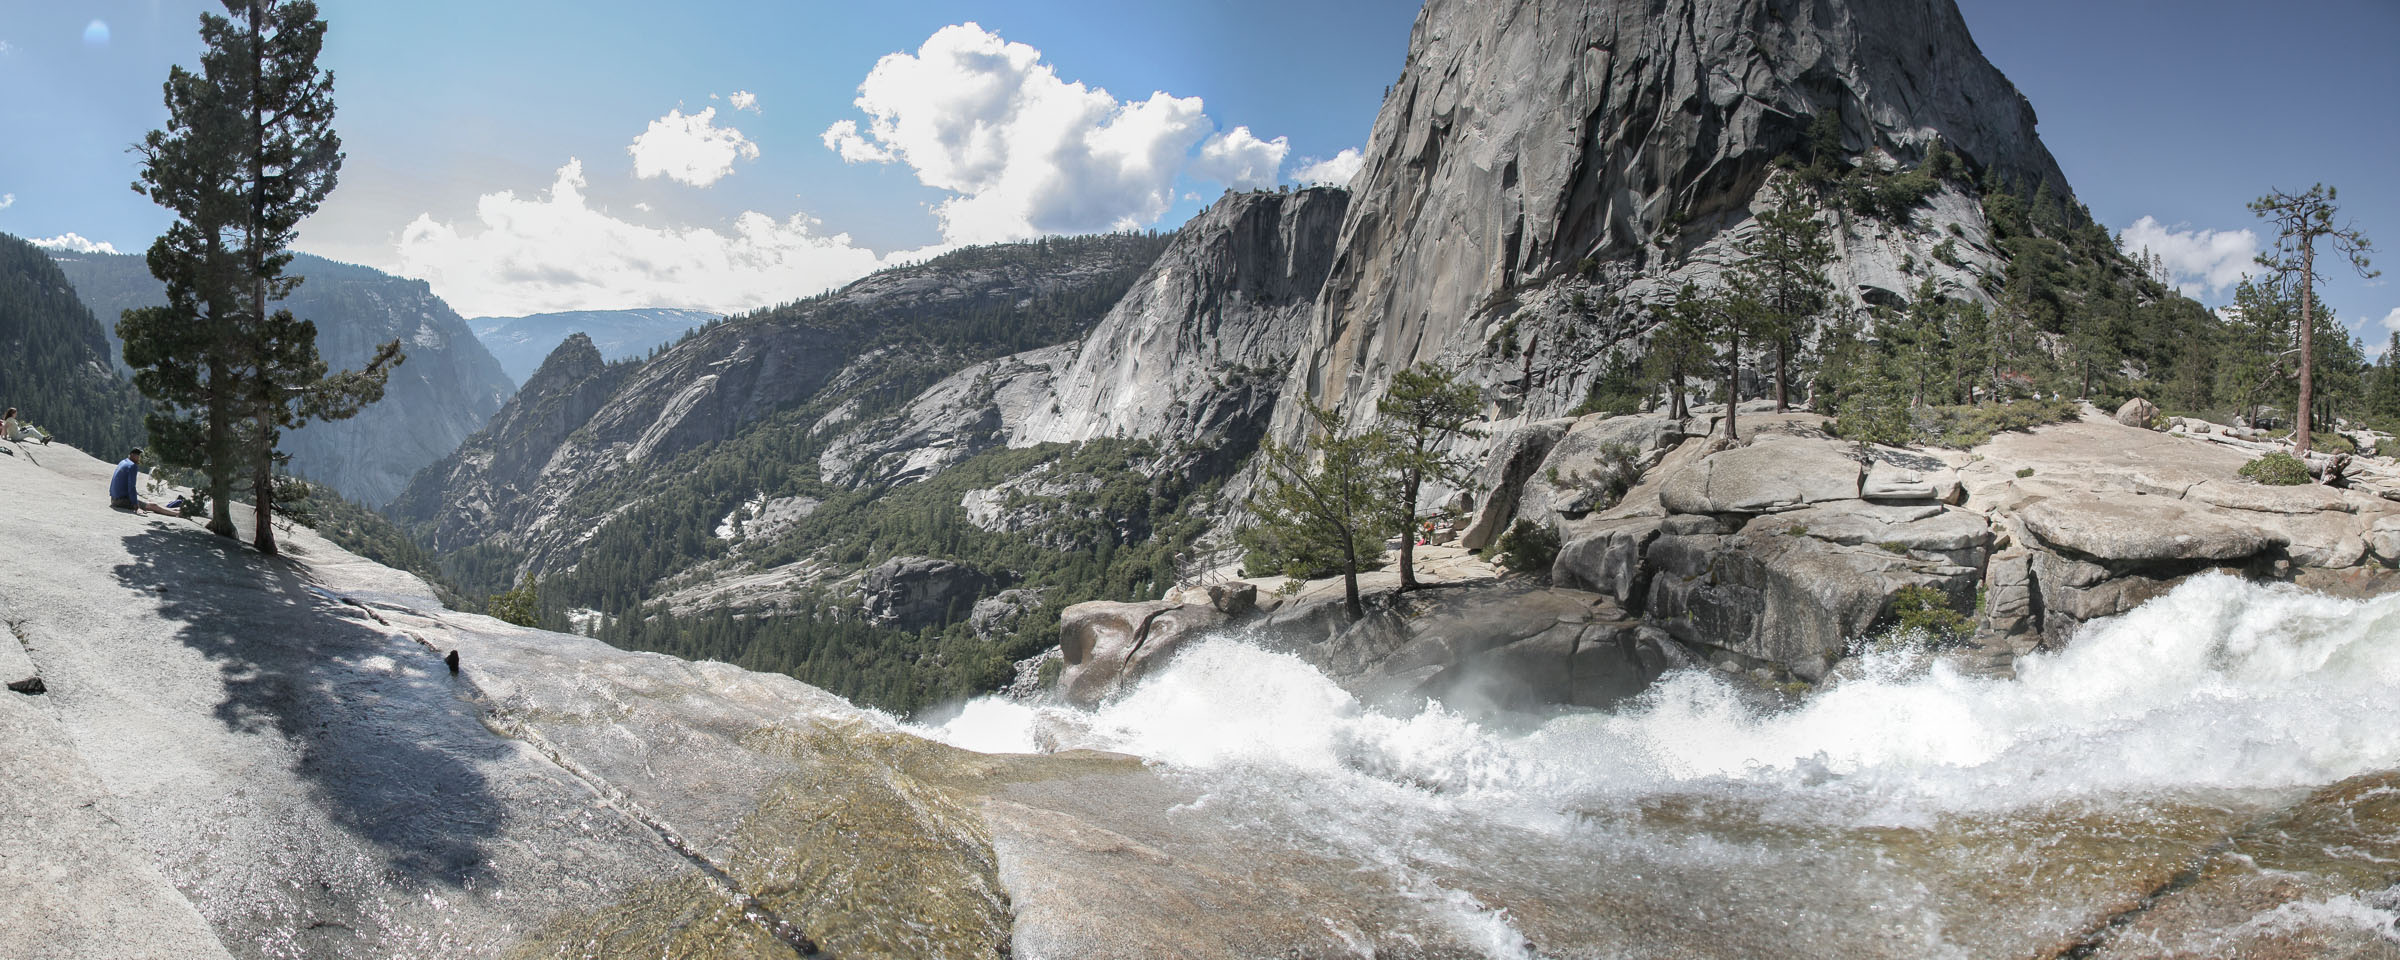 Above Nevada Falls, Yosemite National Park